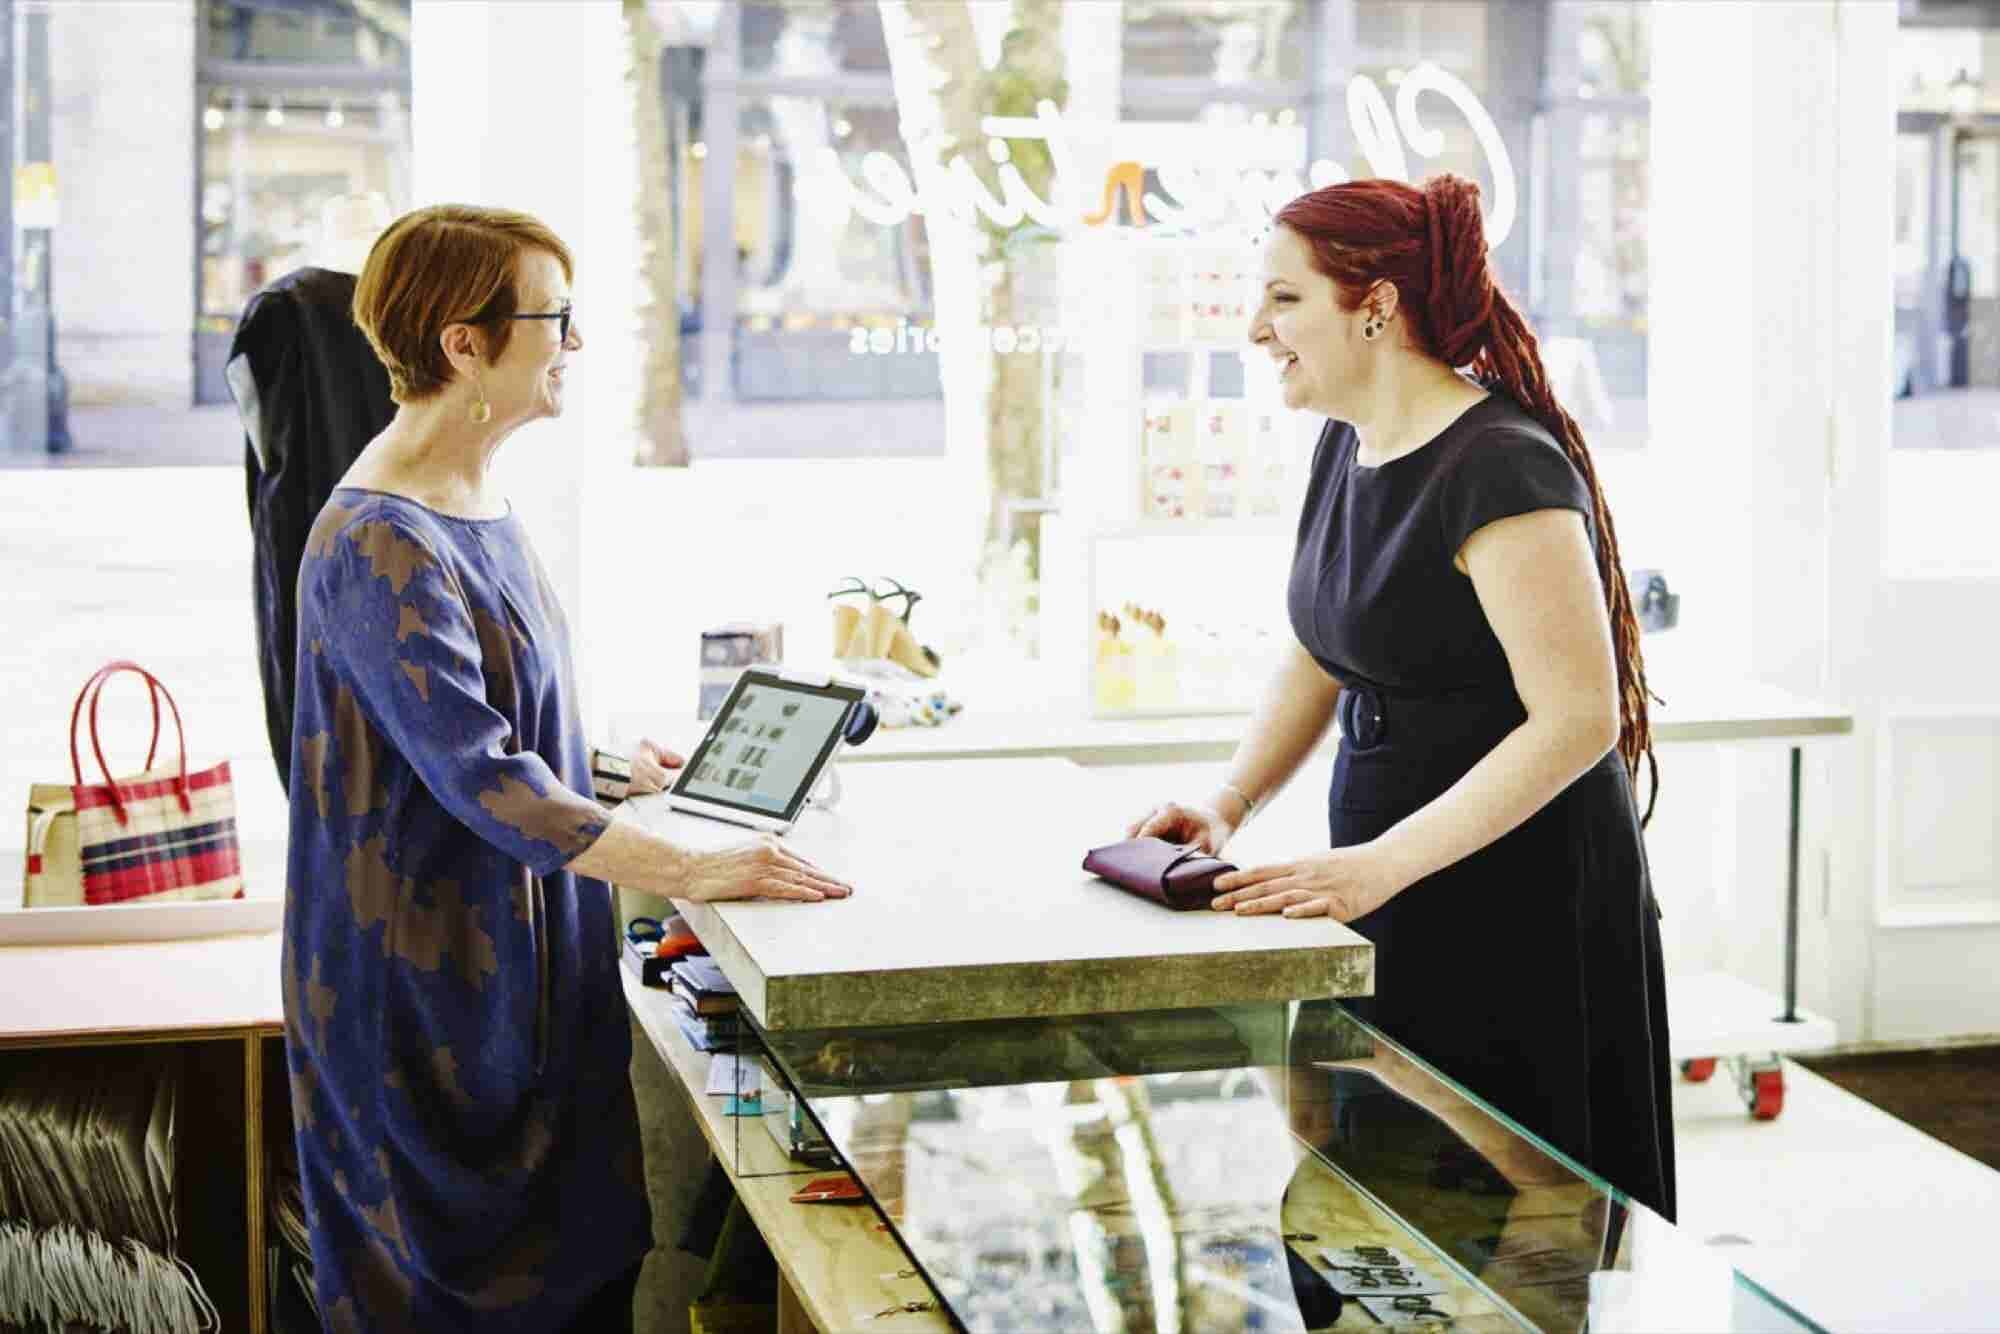 Build Customer Loyalty by Focusing on Customer Outcomes